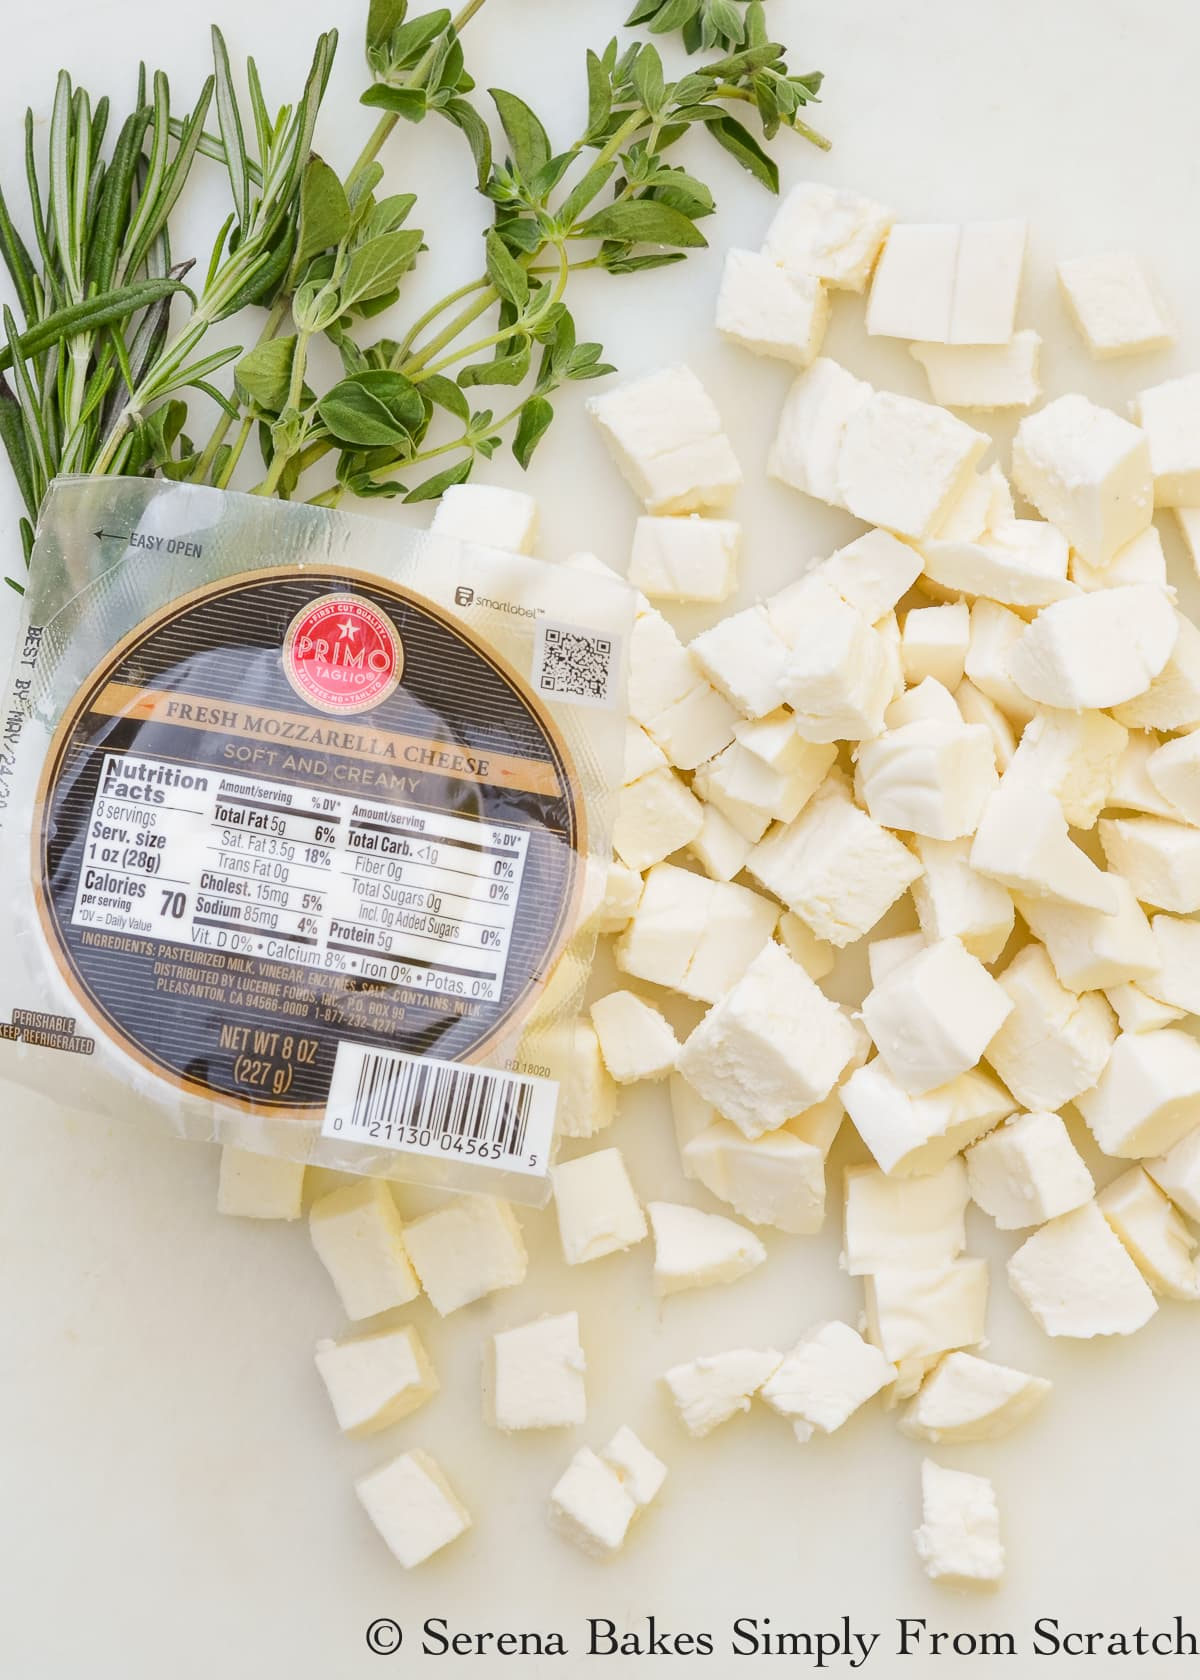 A package of fresh mozzarella cheese and cubed fresh mozzarella cheese on a white cutting board.